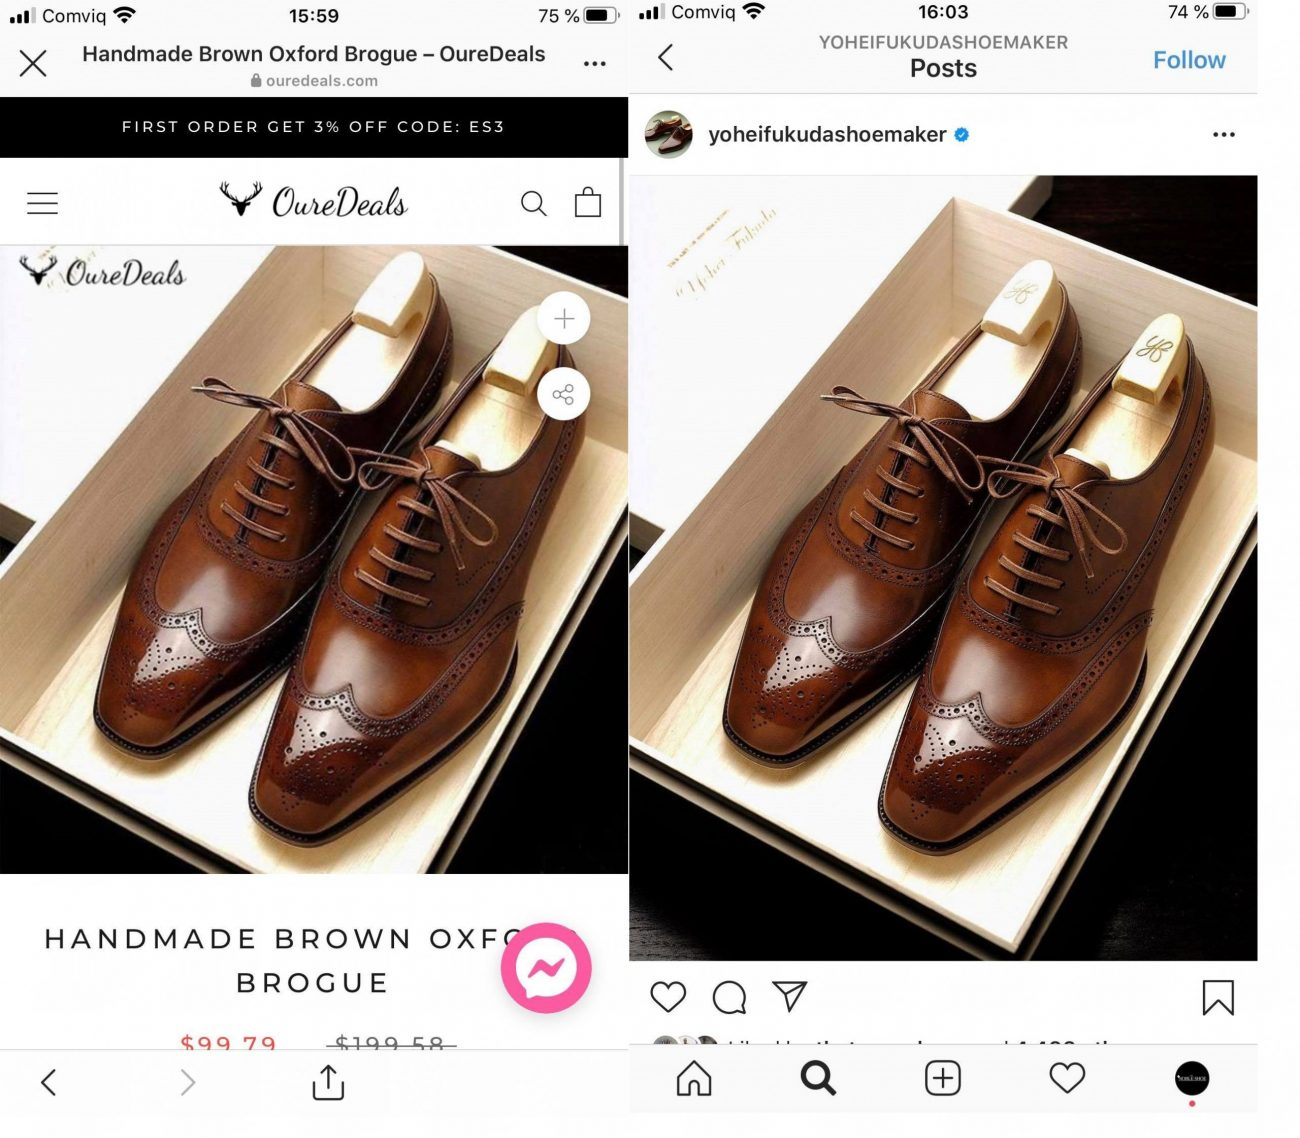 Welted Shoe News July 2020 - OureDeals Scam